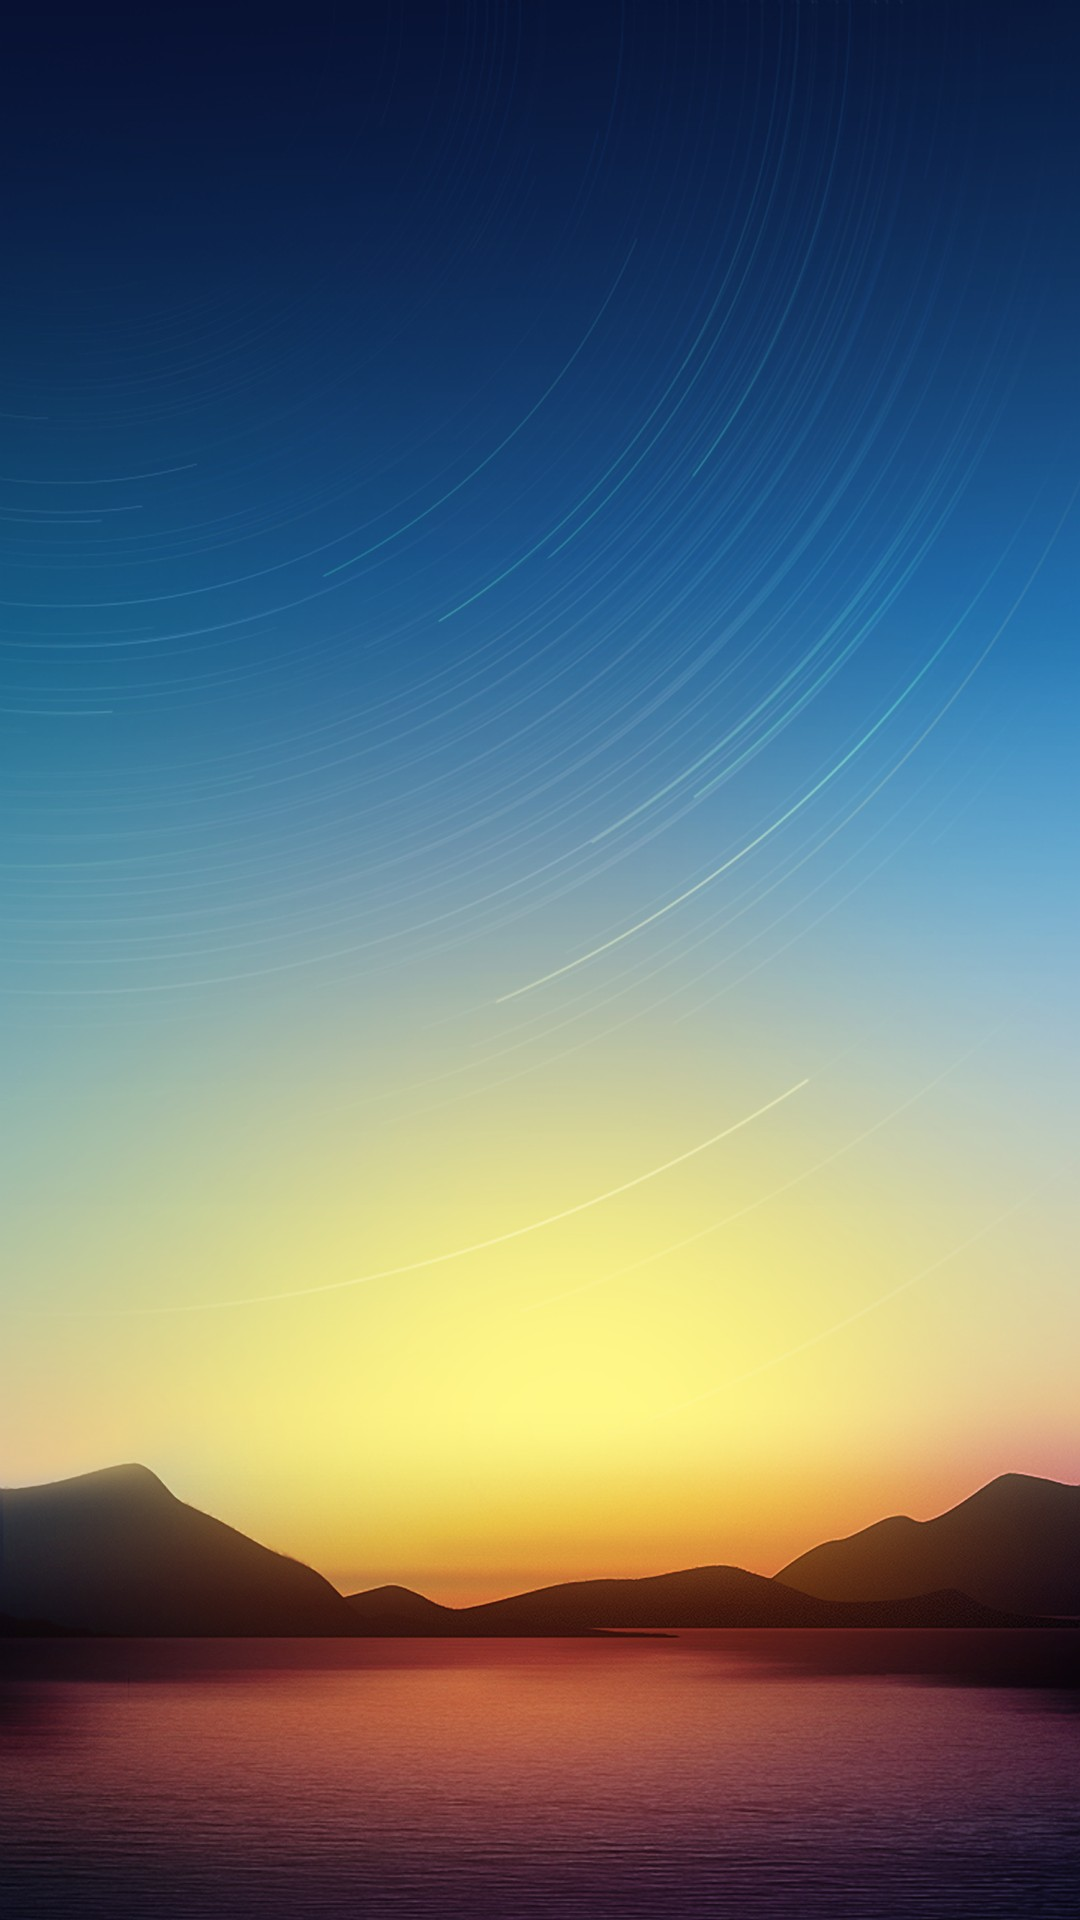 Hd Phone Wallpapers: 83+ Phone Wallpapers HD ·① Download Free Amazing HD